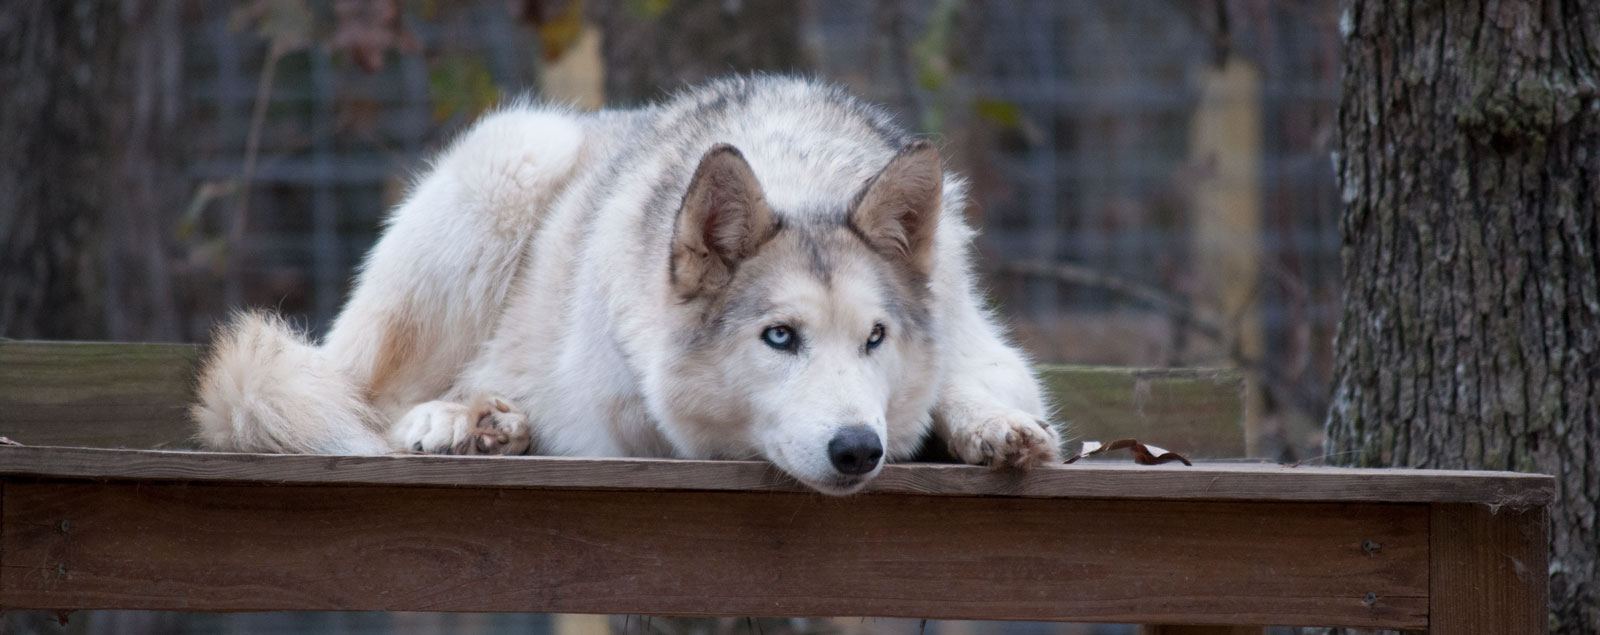 Texas Wolfdog Project | Home